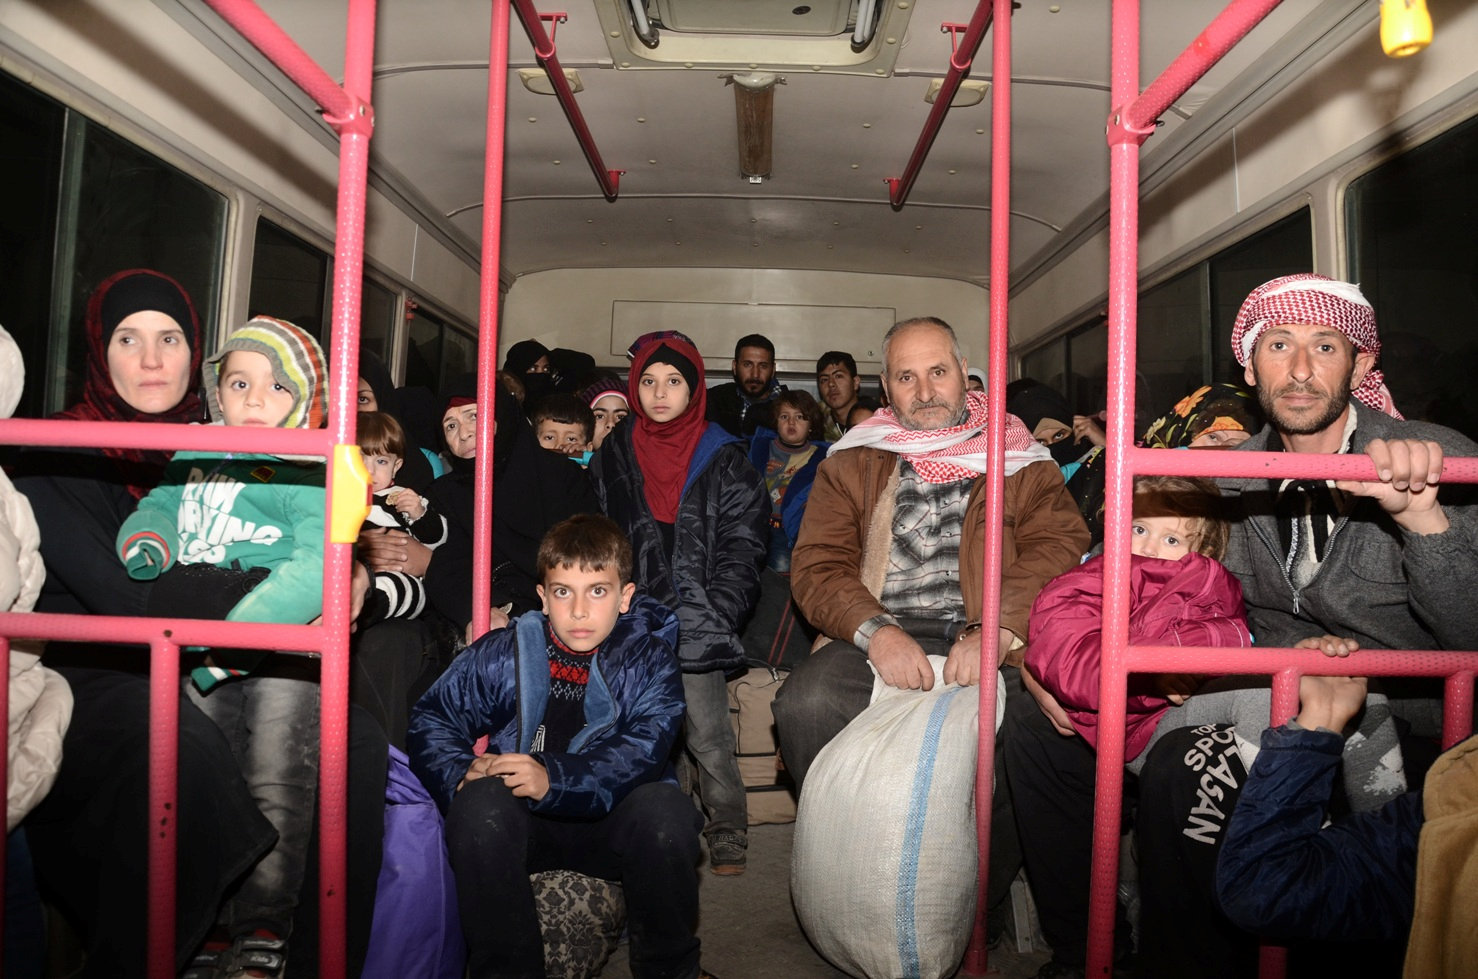 Syrians who evacuated the eastern districts of Aleppo ride a government bus in Aleppo, Syria in this handout picture provided by SANA on November 27, 2016. SANA/Handout via REUTERS ATTENTION EDITORS - THIS IMAGE WAS PROVIDED BY A THIRD PARTY. EDITORIAL USE ONLY. REUTERS IS UNABLE TO INDEPENDENTLY VERIFY THIS IMAGE. TPX IMAGES OF THE DAY *** Local Caption *** Warga Suriah yang dievakuasi dari timur distrik Aleppo menumpang bus pemerintah di Aleppo, Suriah, dalam foto yang disediakan oleh SANA, Minggu (27/11). ANTARA FOTO/SANA/Handout via REUTERS/cfo/16